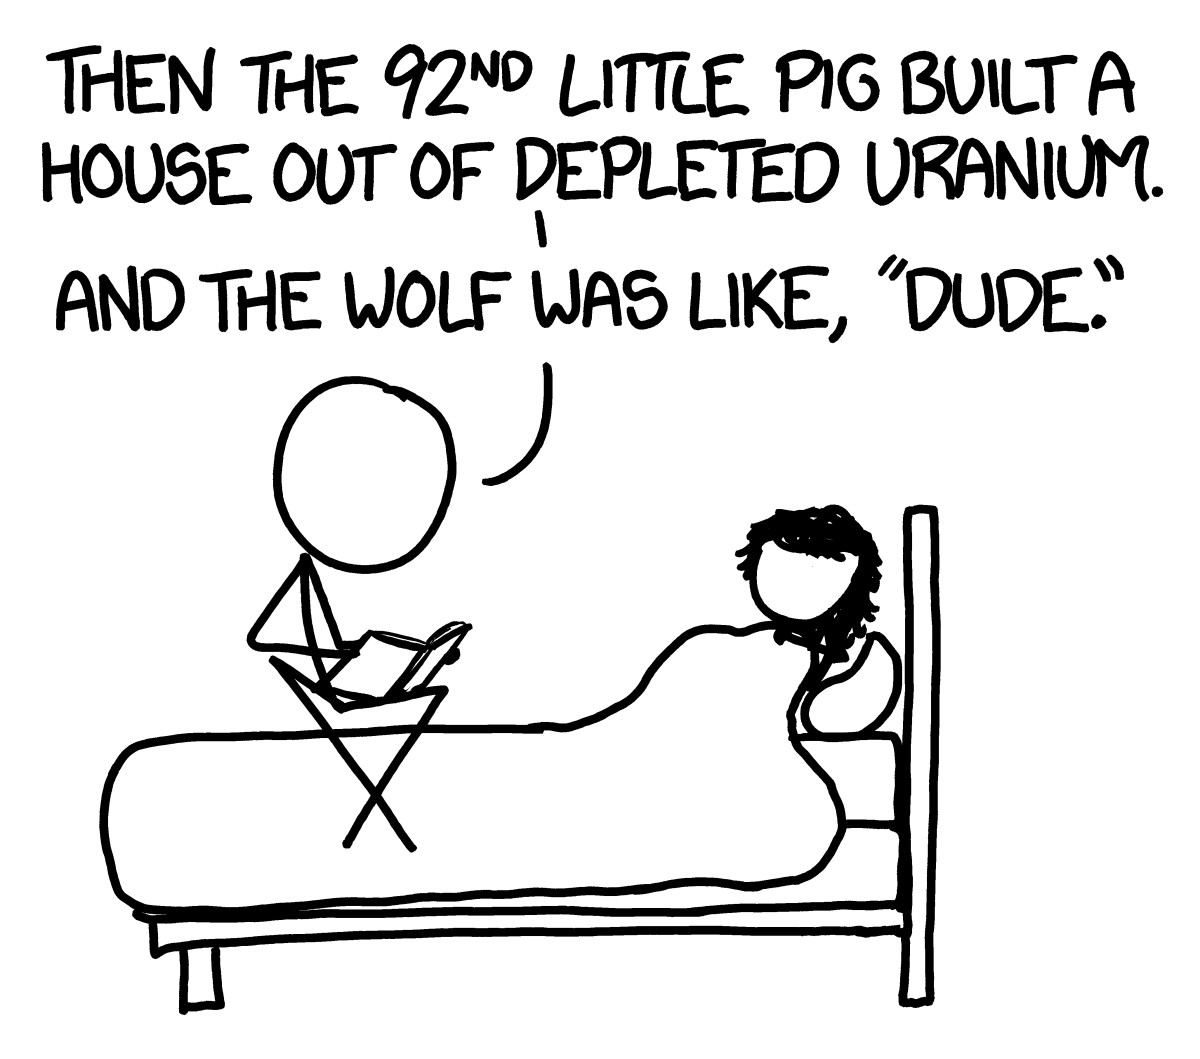 A comic drawn by the book's author, Randall Munroe